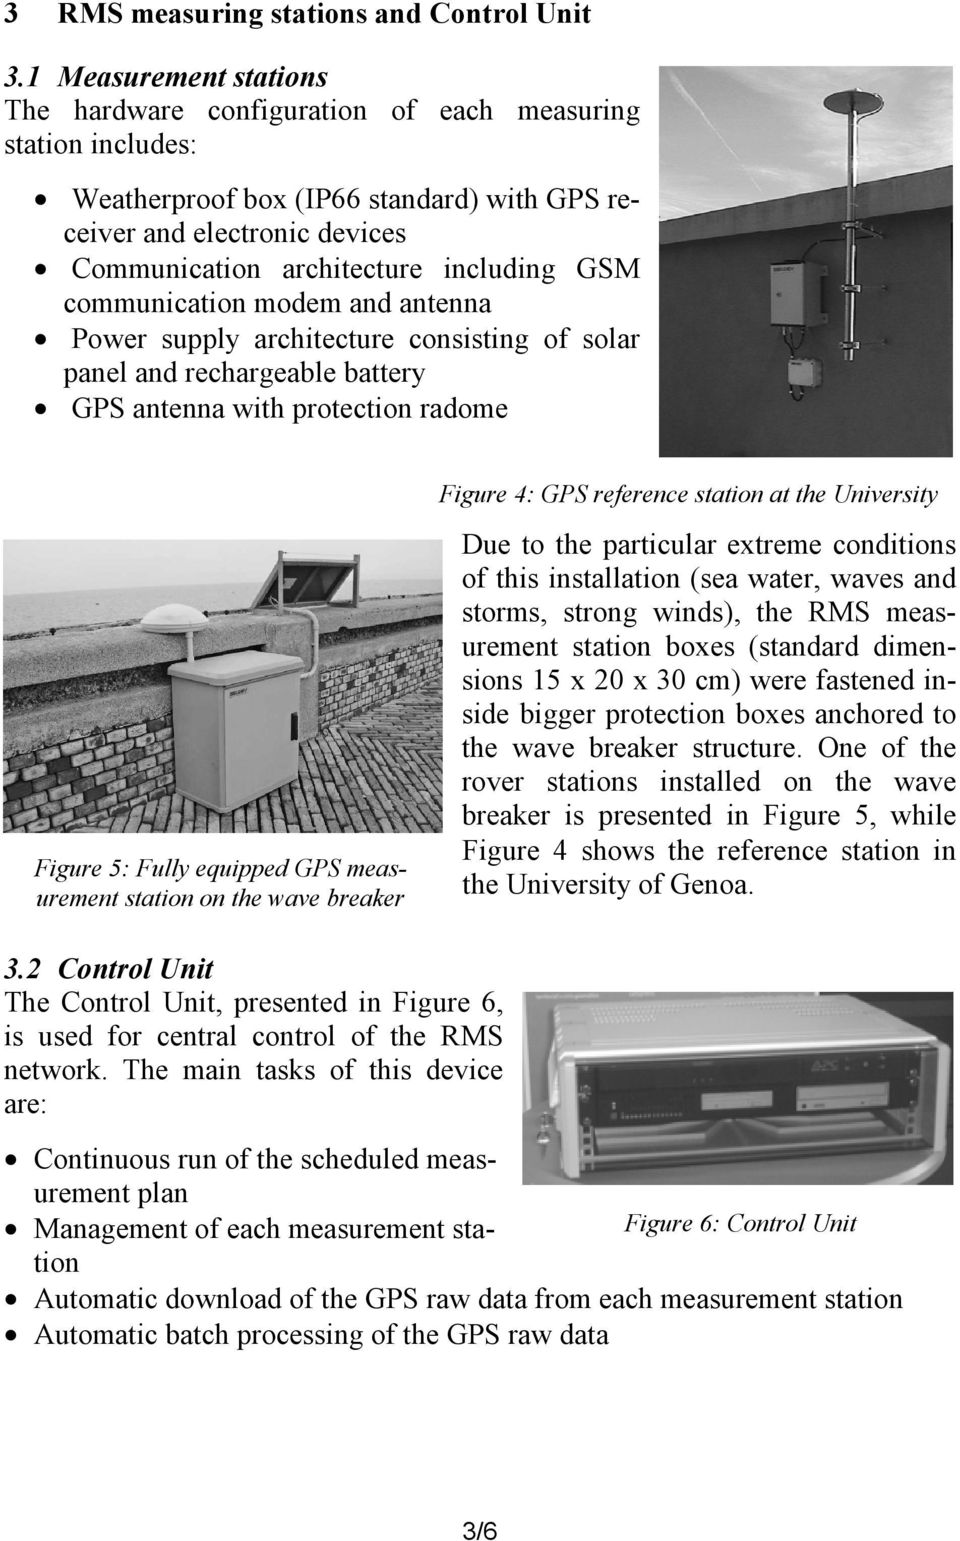 GSM communication modem and antenna Power supply architecture consisting of solar panel and rechargeable battery GPS antenna with protection radome Figure 4: GPS reference station at the University